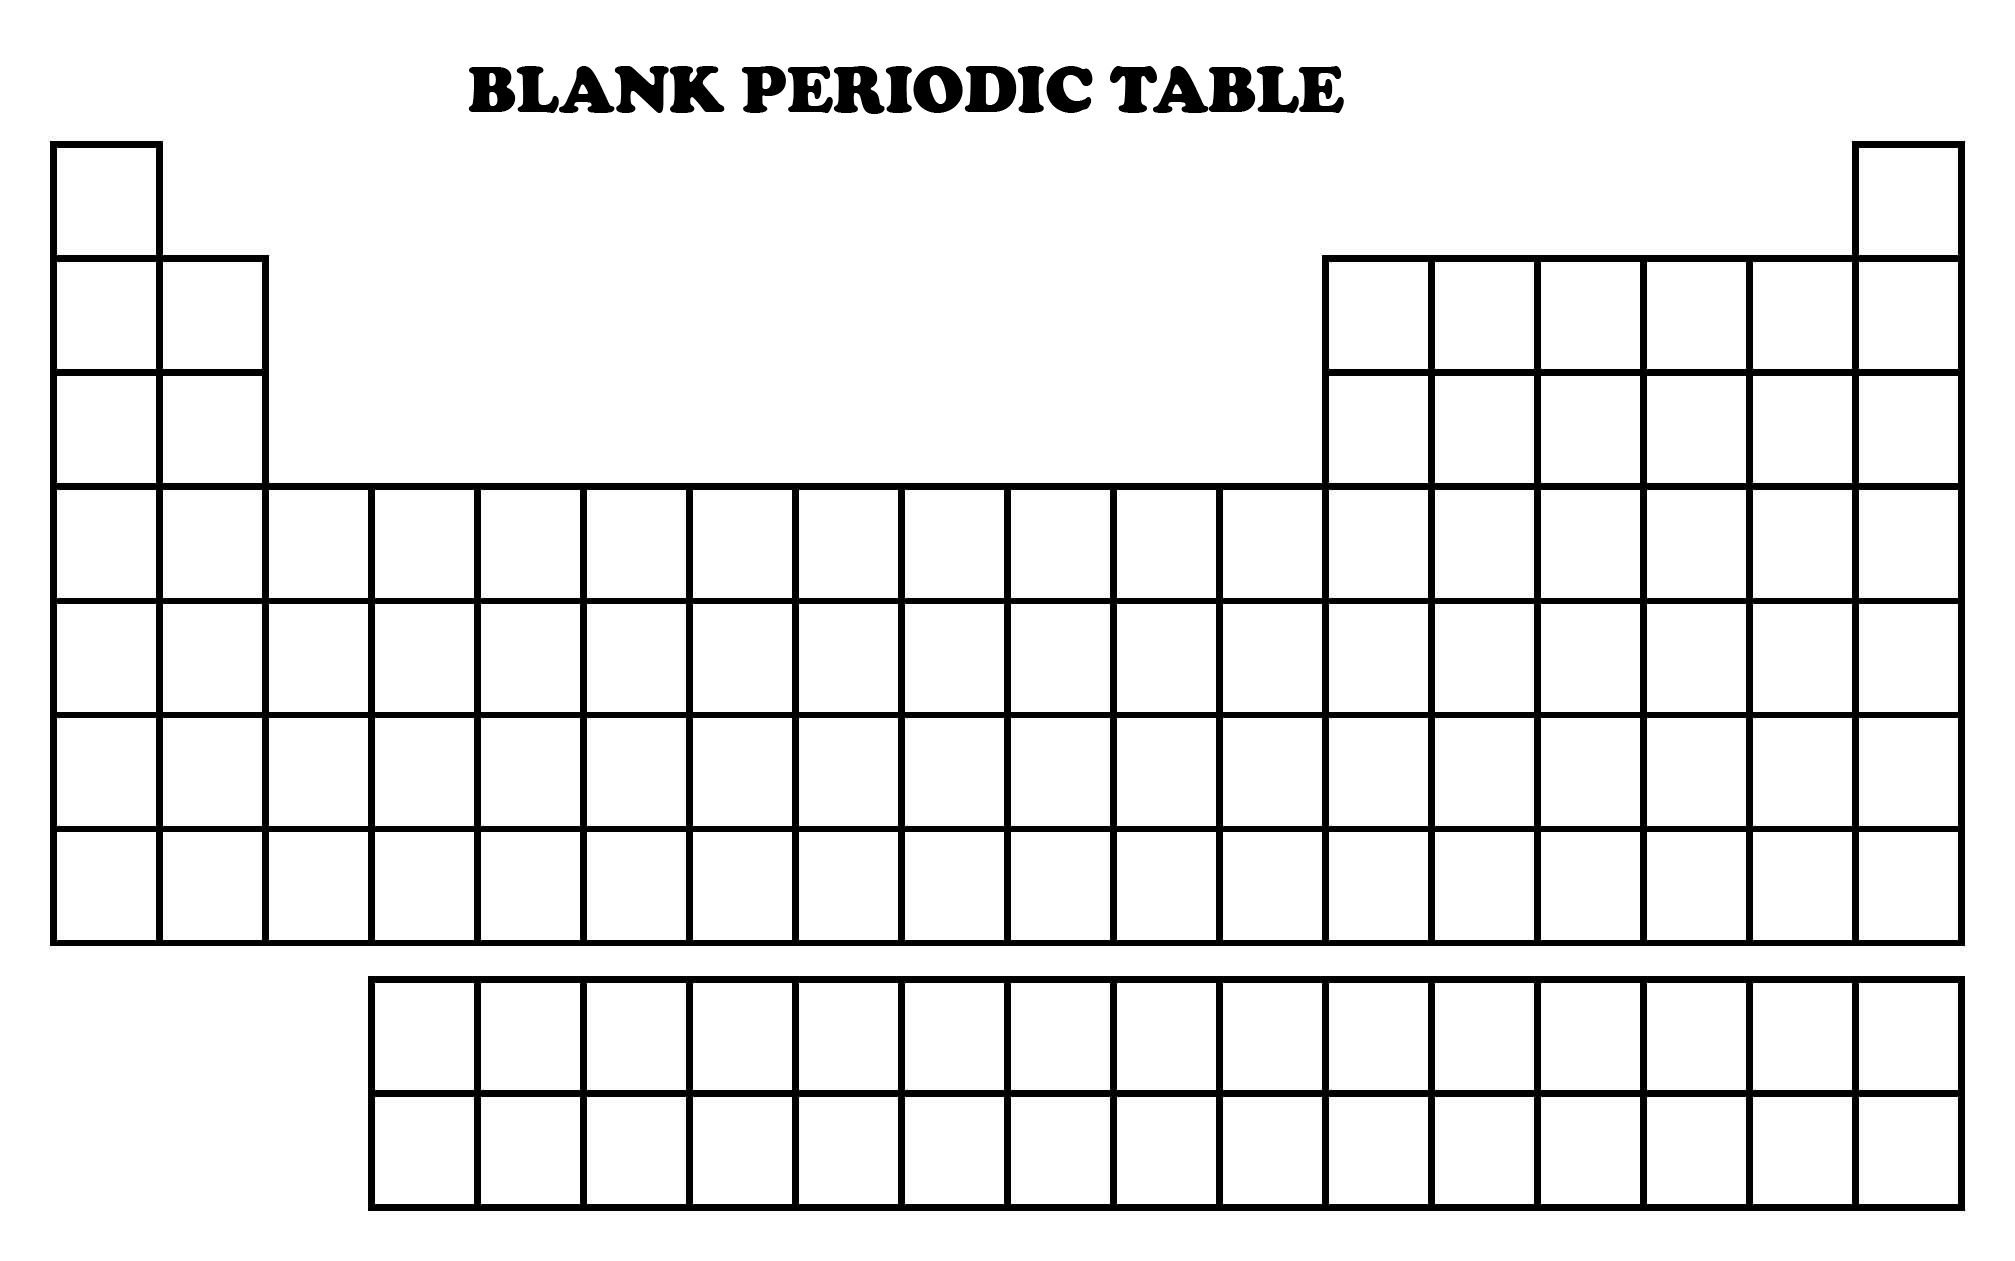 Periodic table blank classical conversations cycle 3 pinterest periodic table blank gamestrikefo Gallery